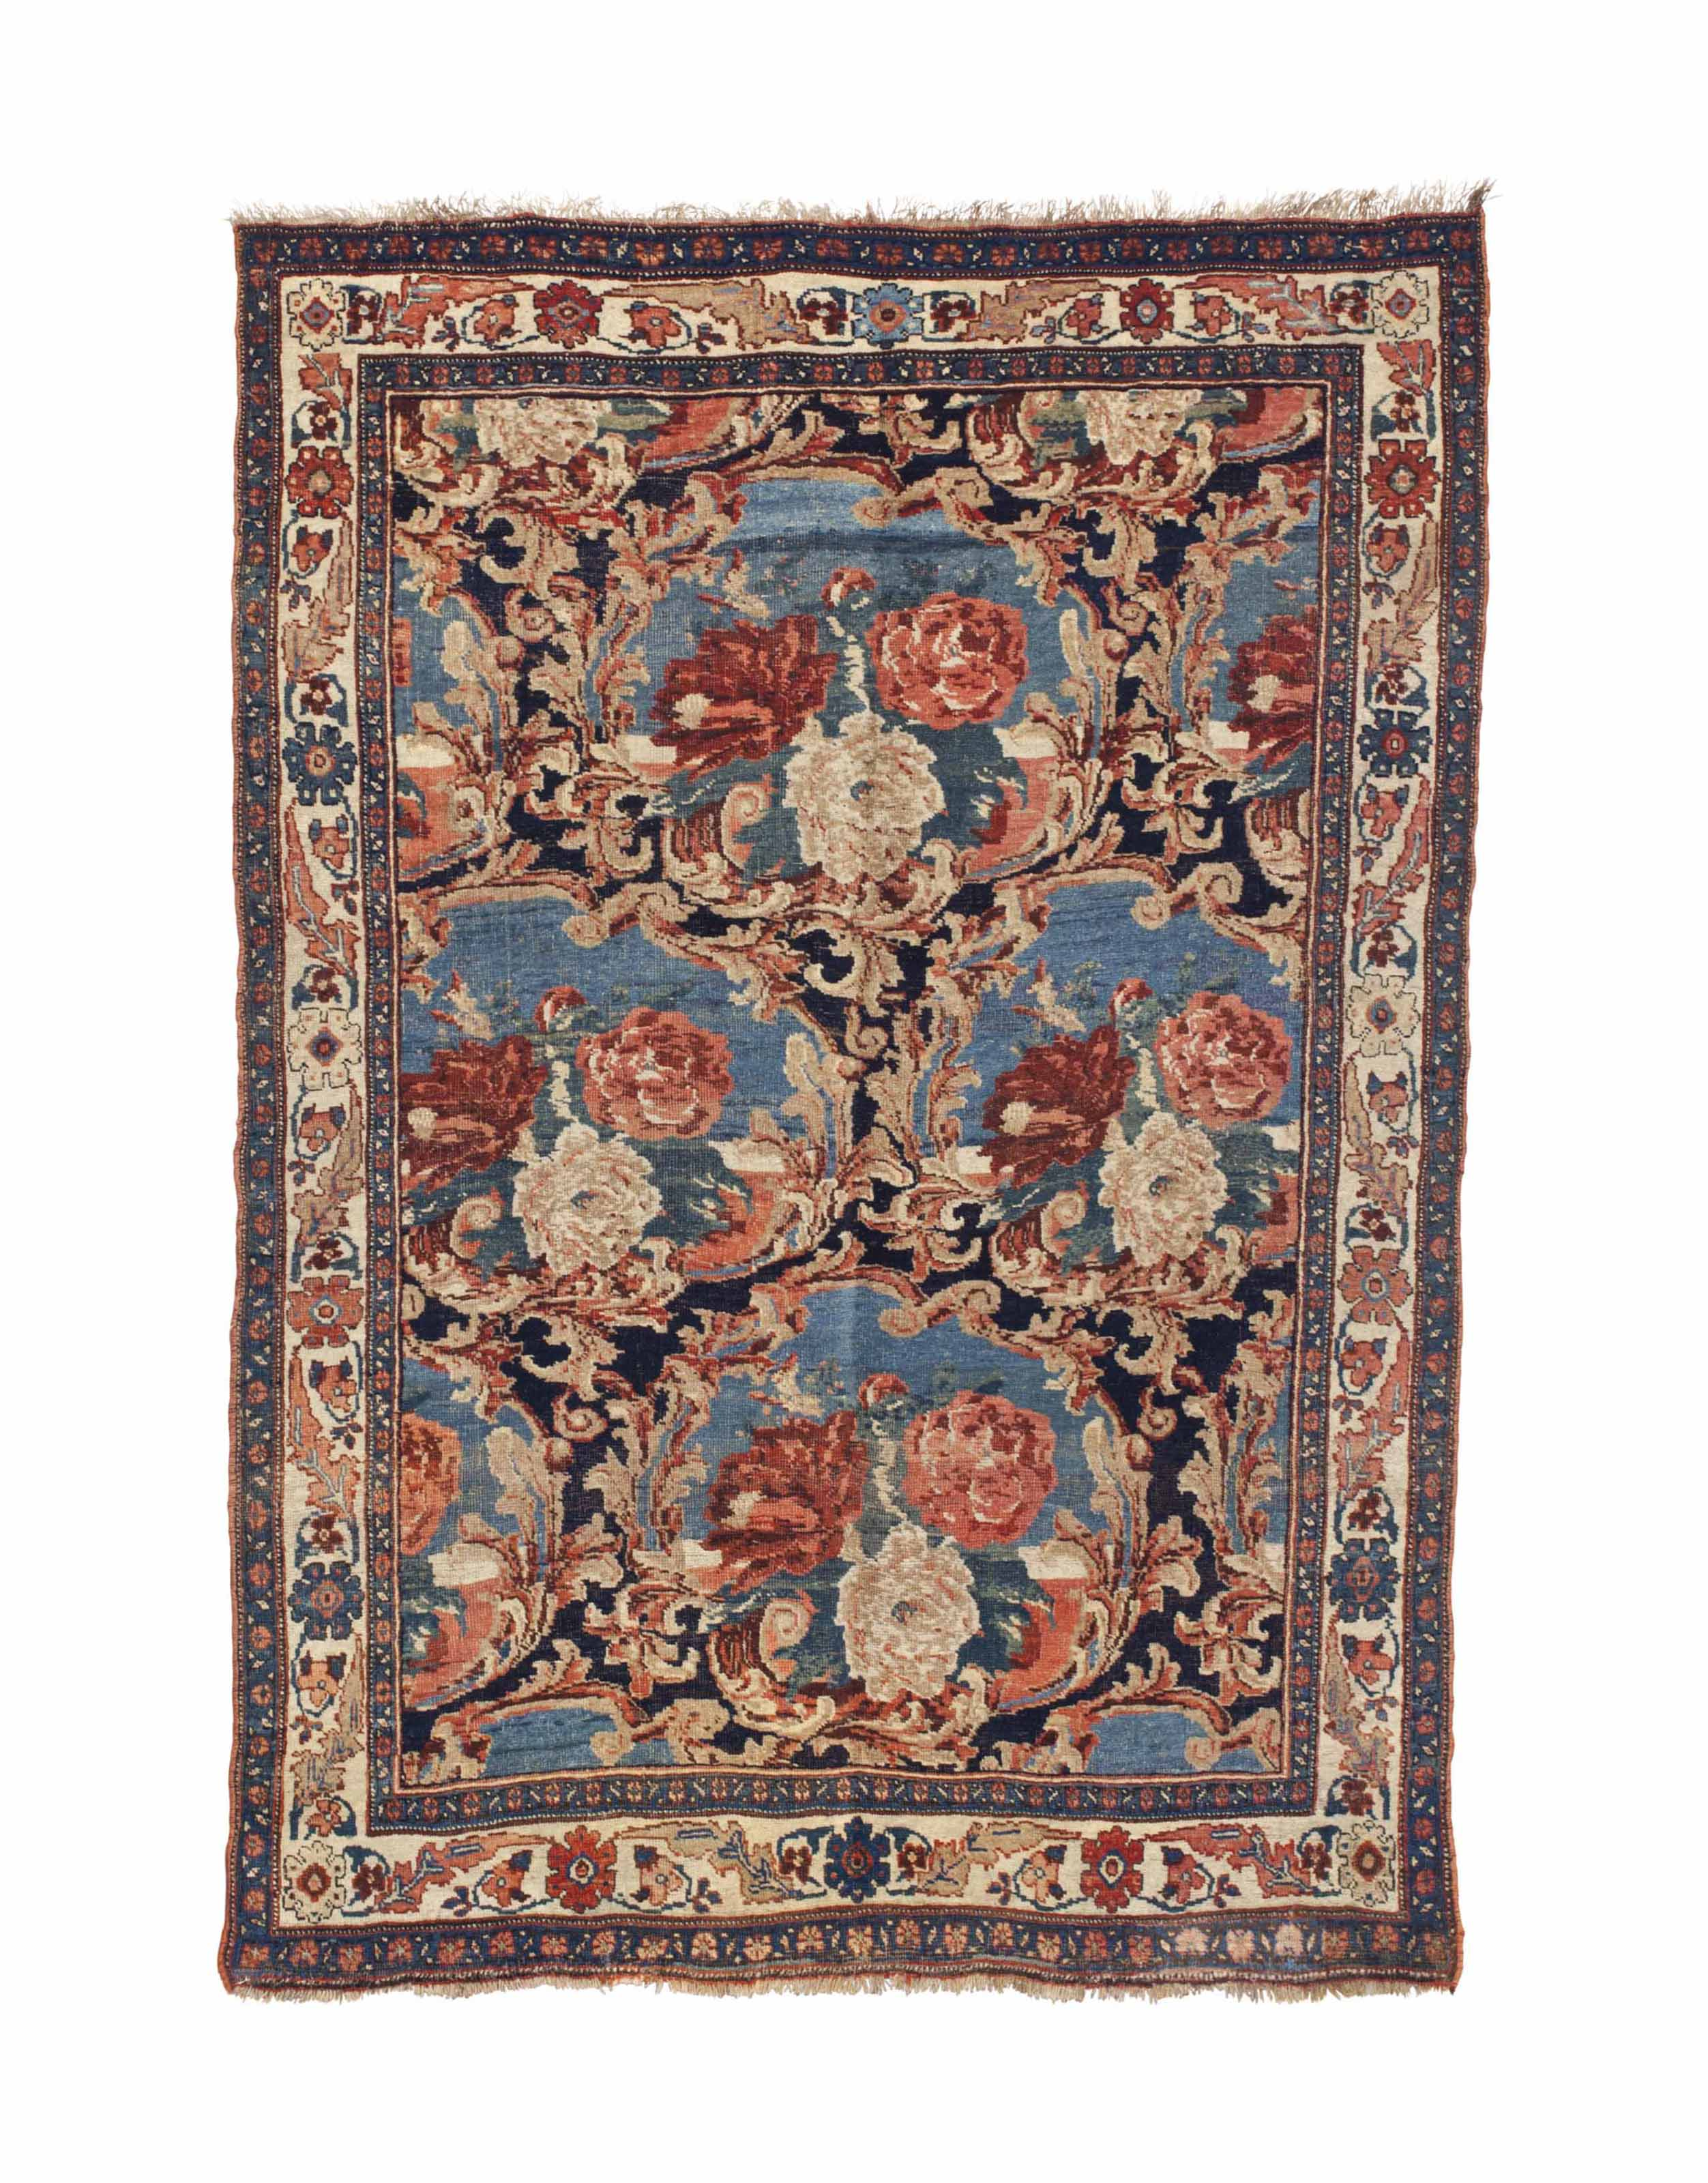 TWO BIDJAR RUGS,